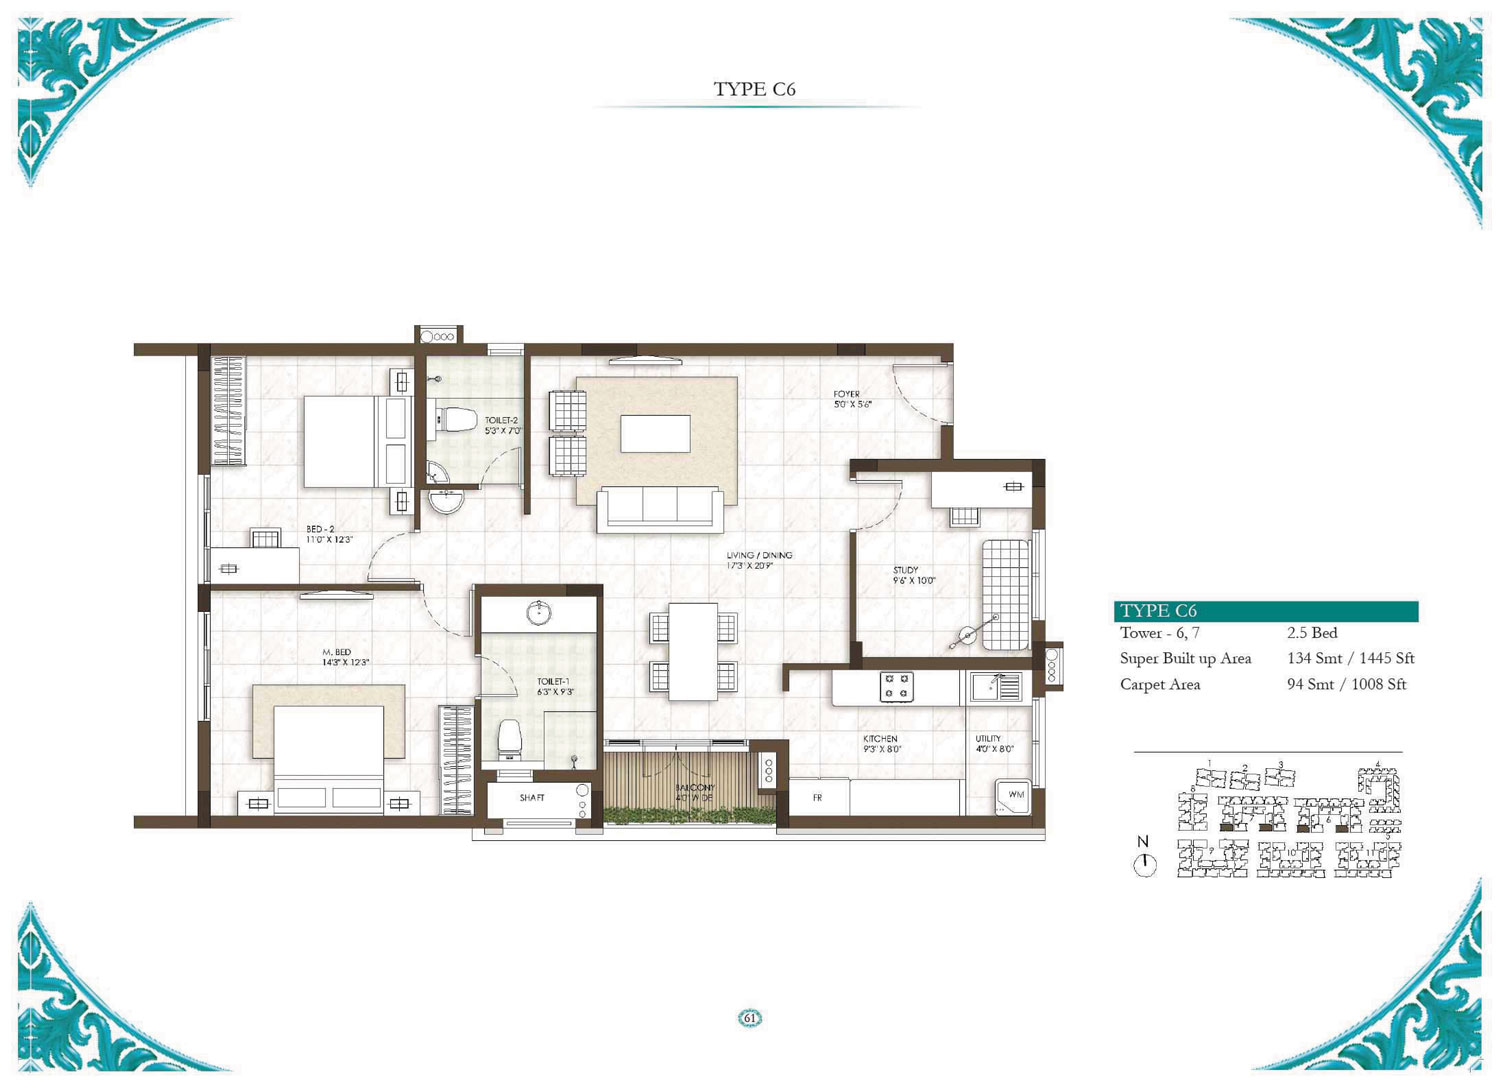 Type C6 - 2.5 Bed - 1445 Sq Ft